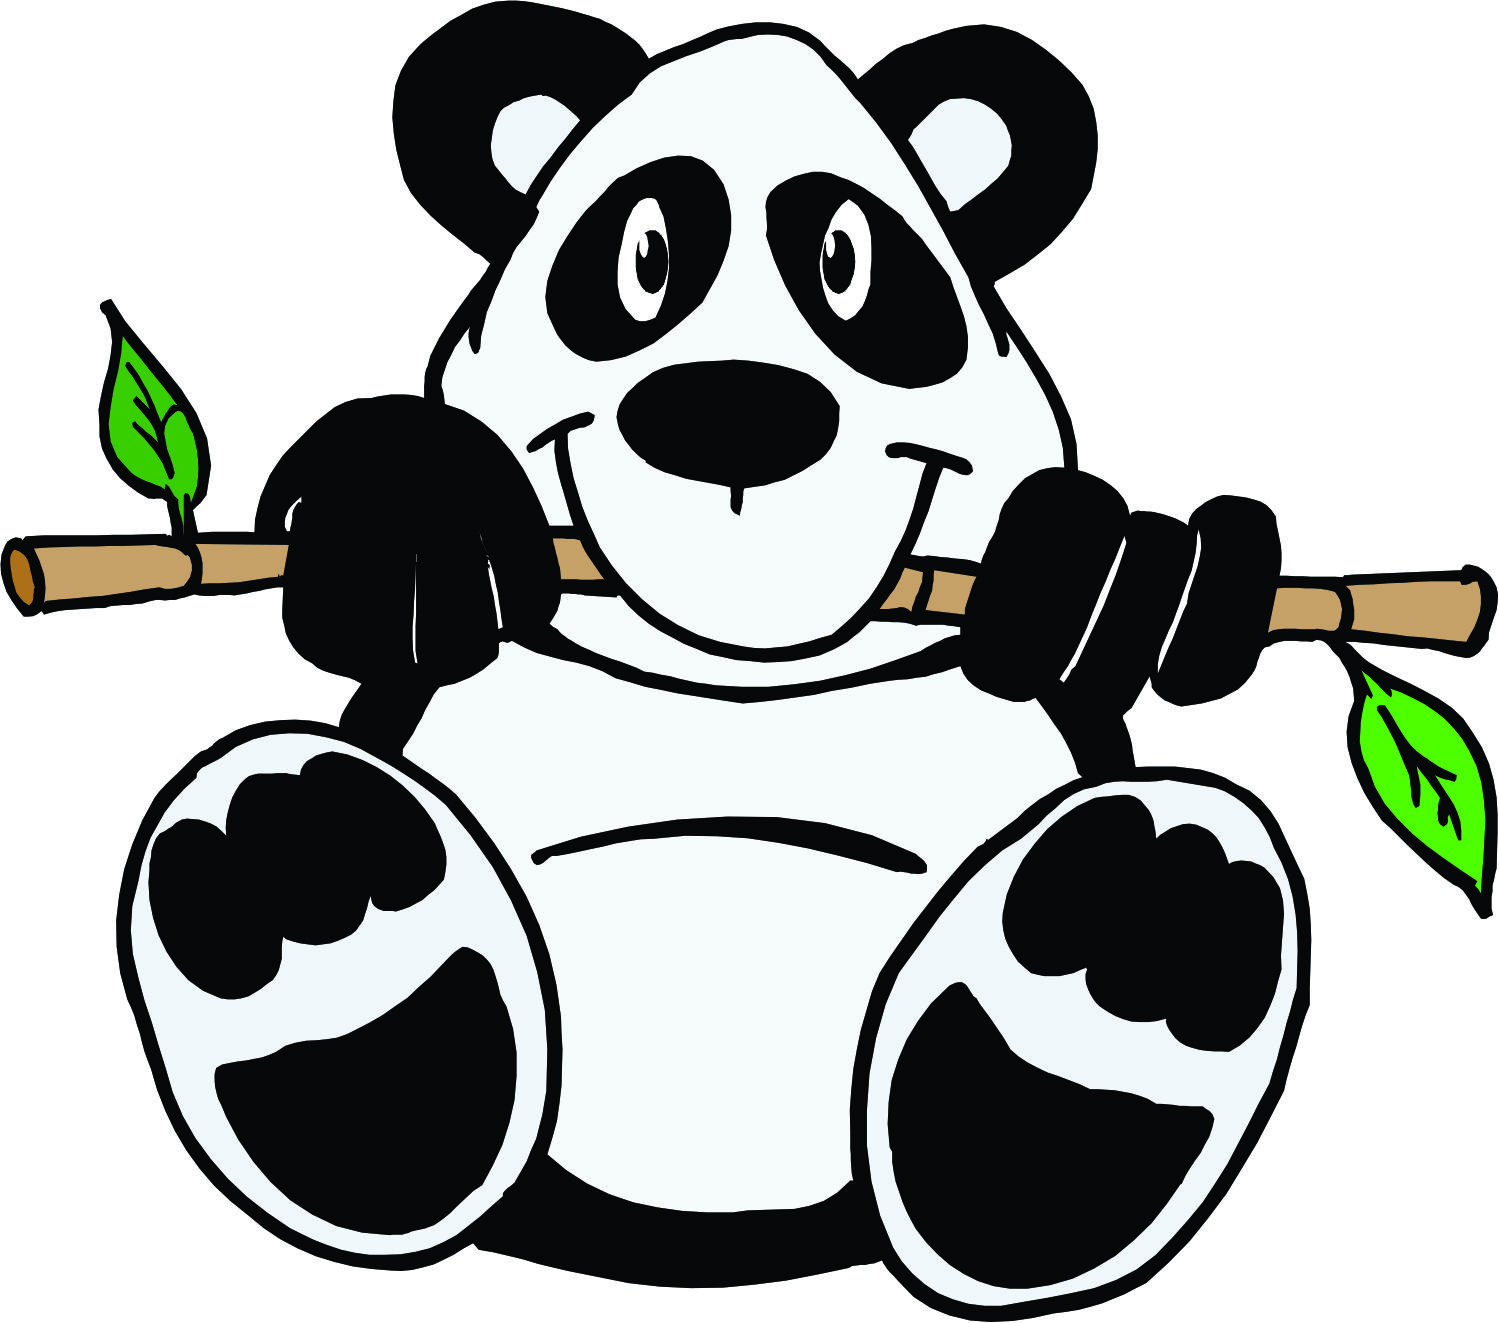 Pictures Of Cartoon Panda Bears - ClipArt Best